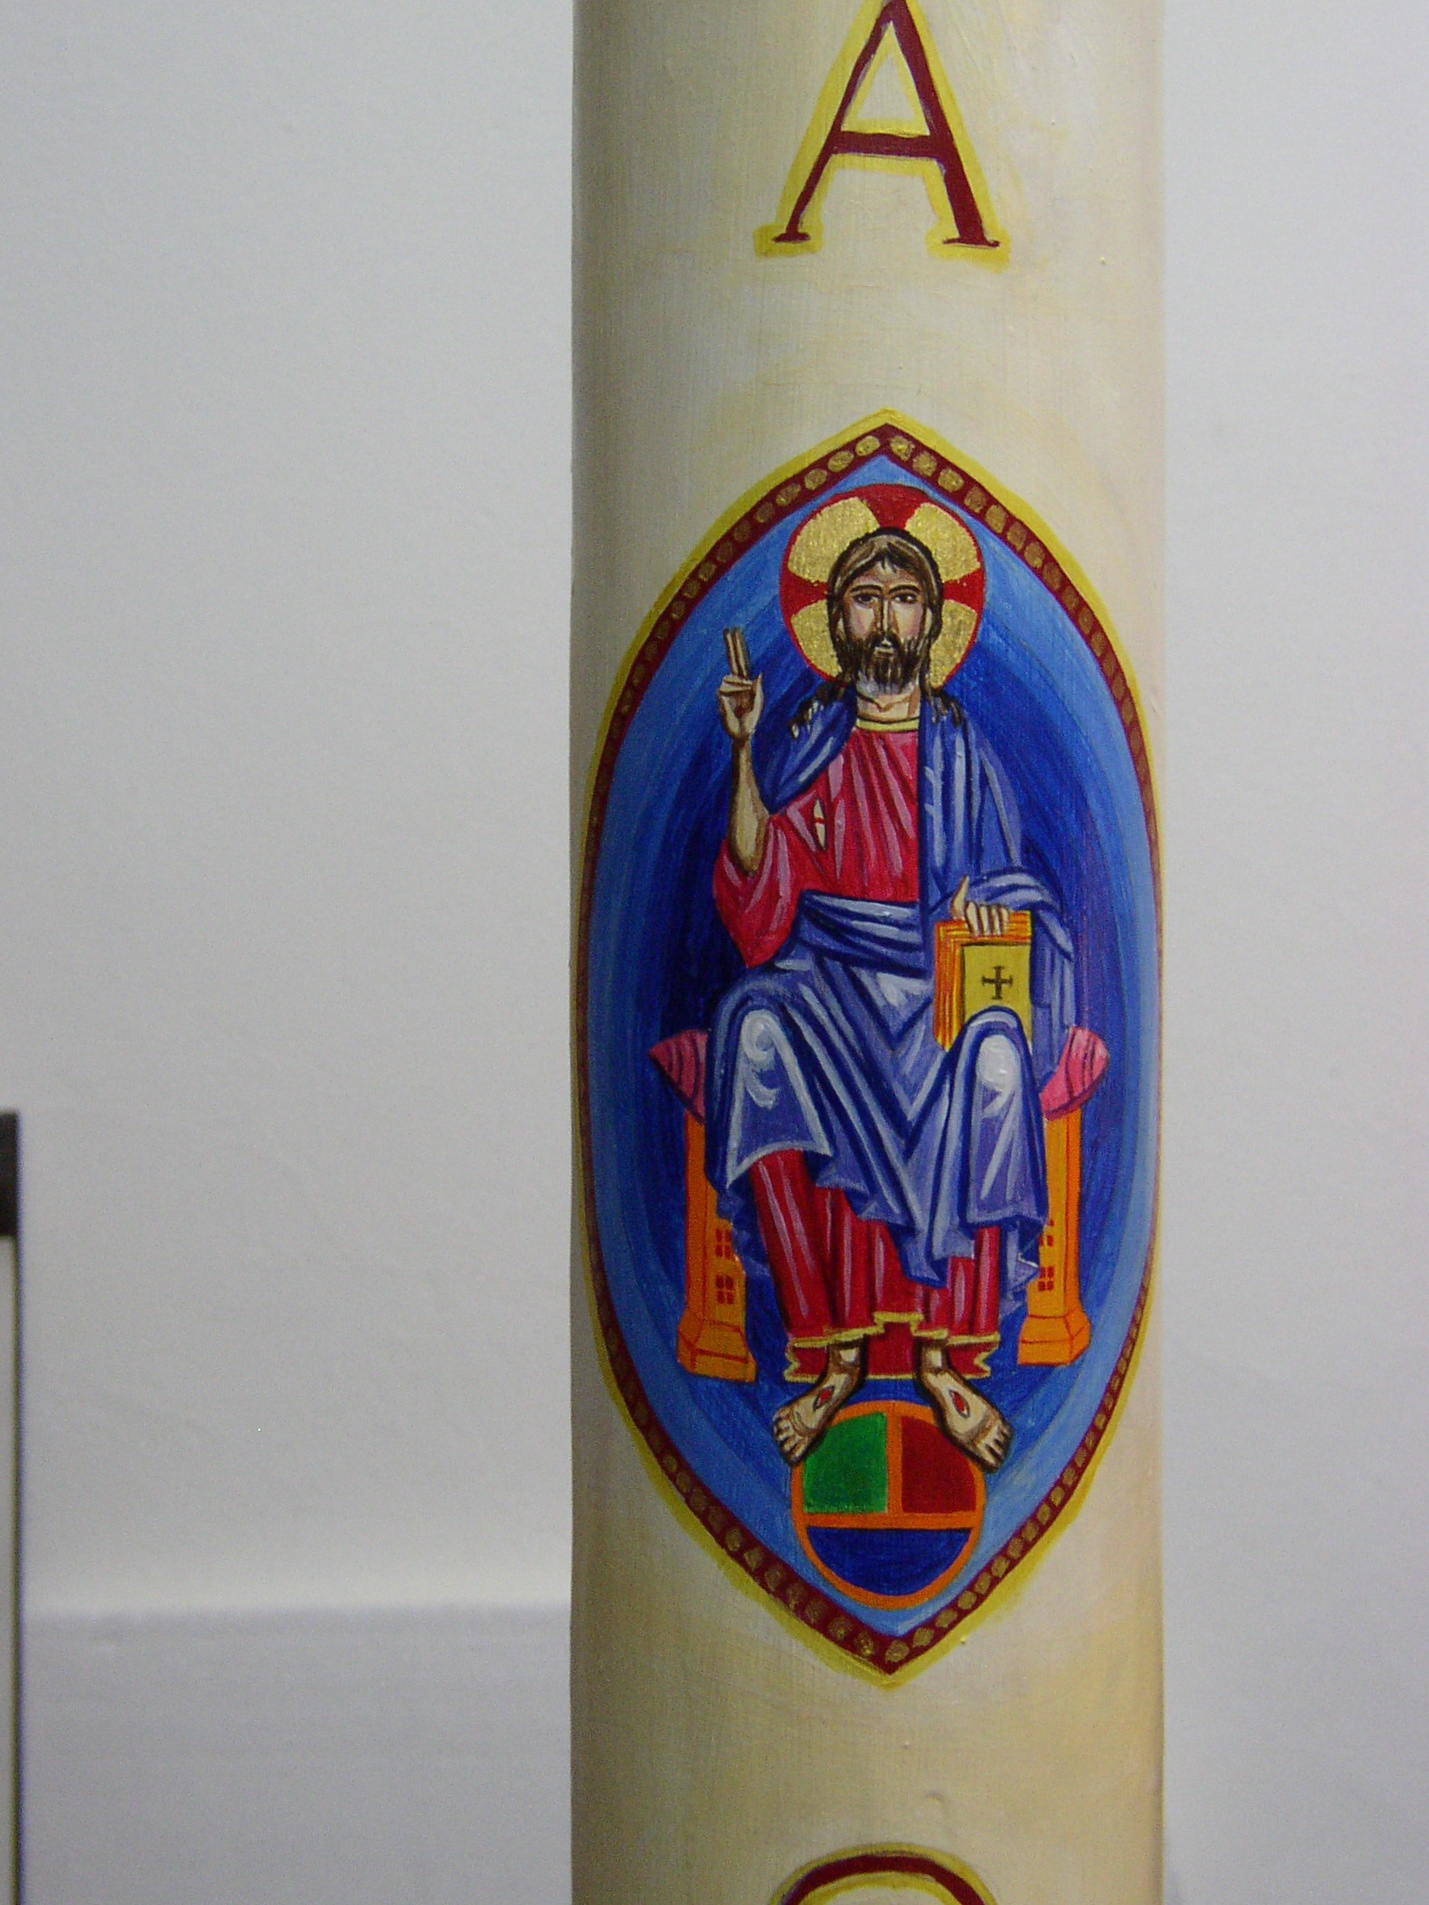 Paschal Candle. Saint Paul's Cathedral, London 2011.